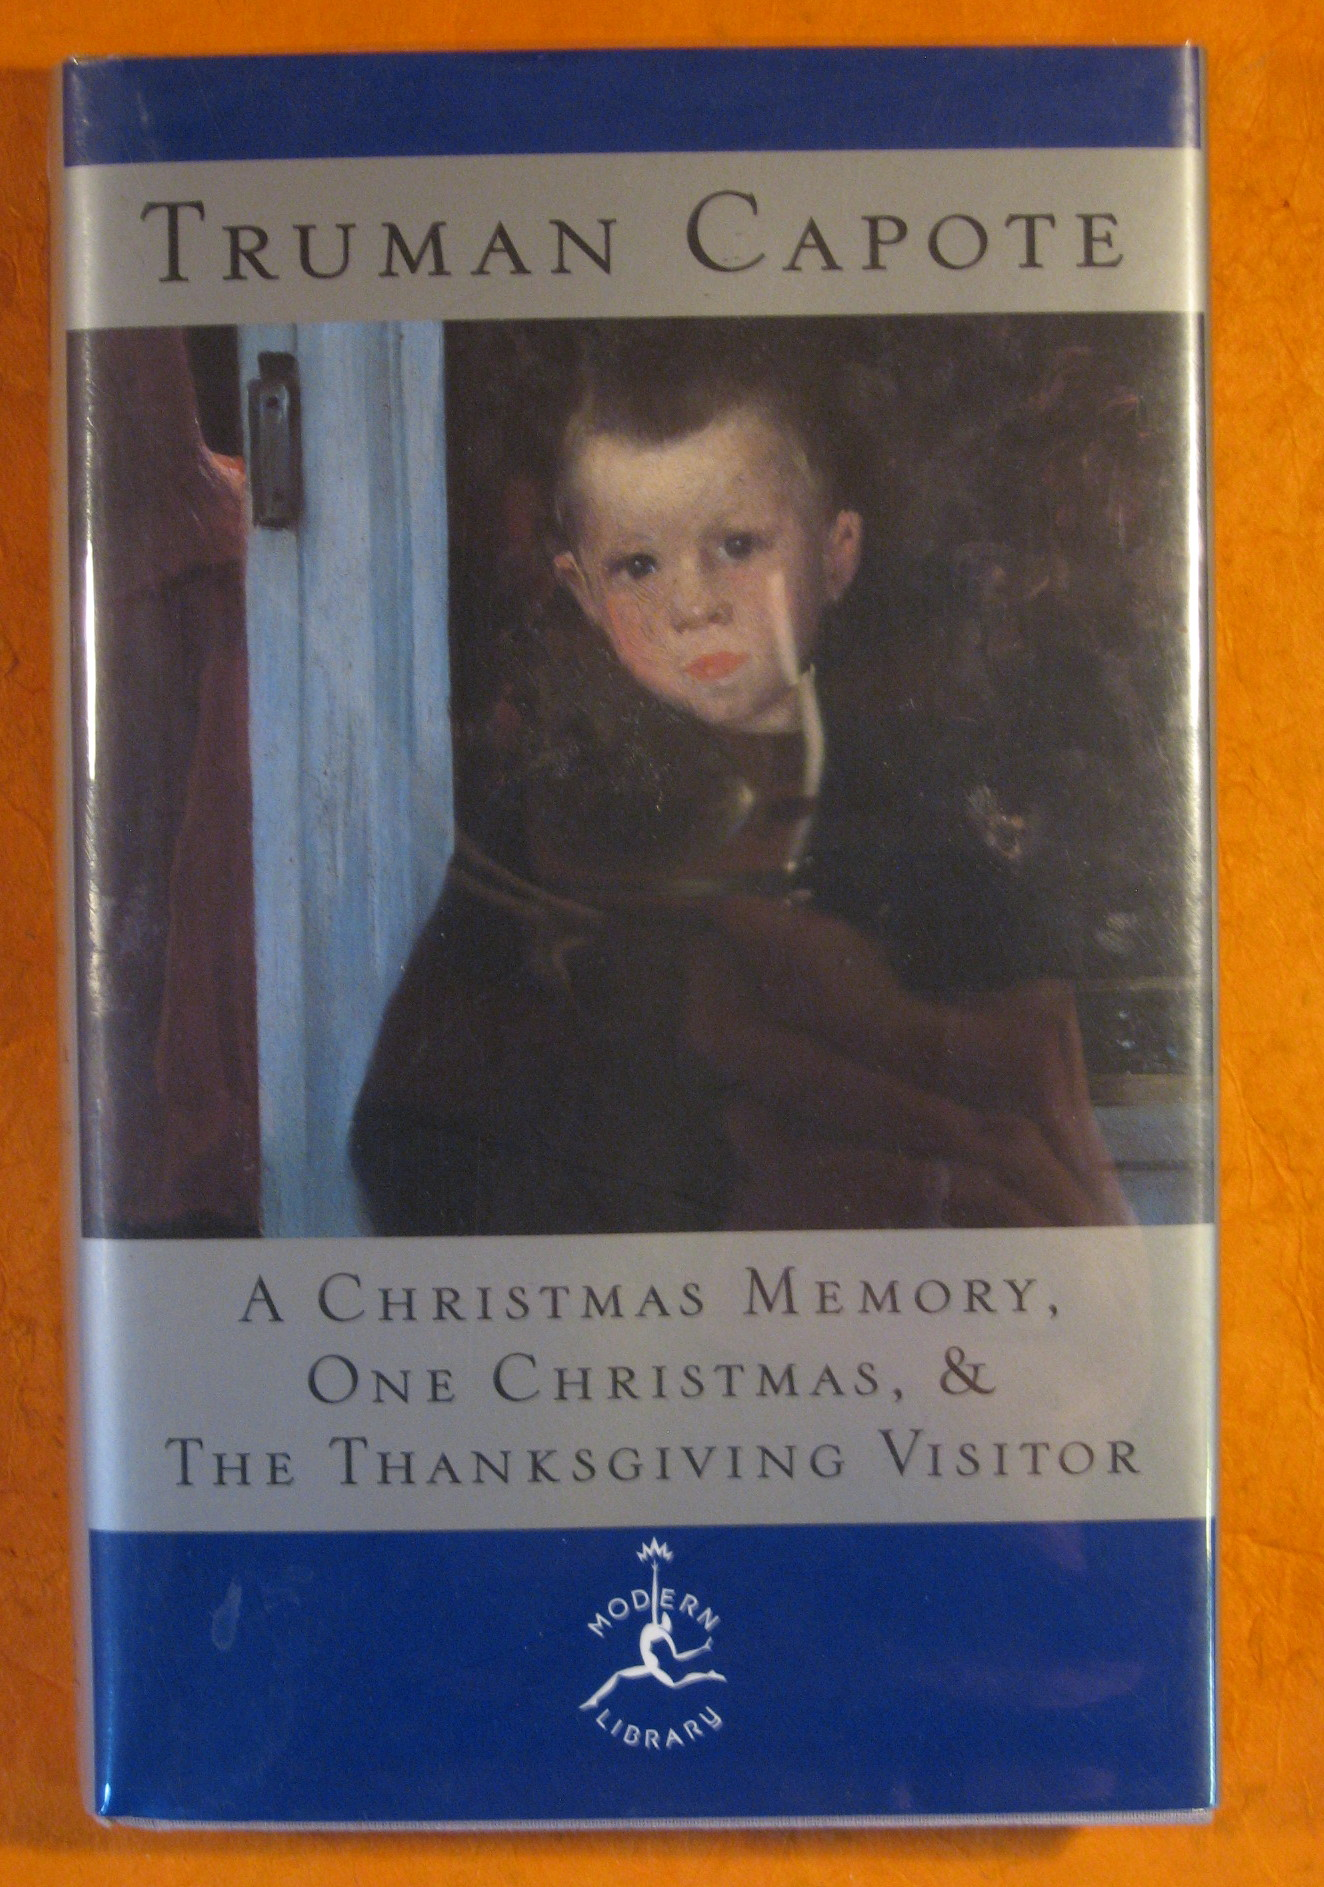 Christmas Memory: One Christmas, and The Thanksgiving Visitor (Modern Library), A, Capote, Truman